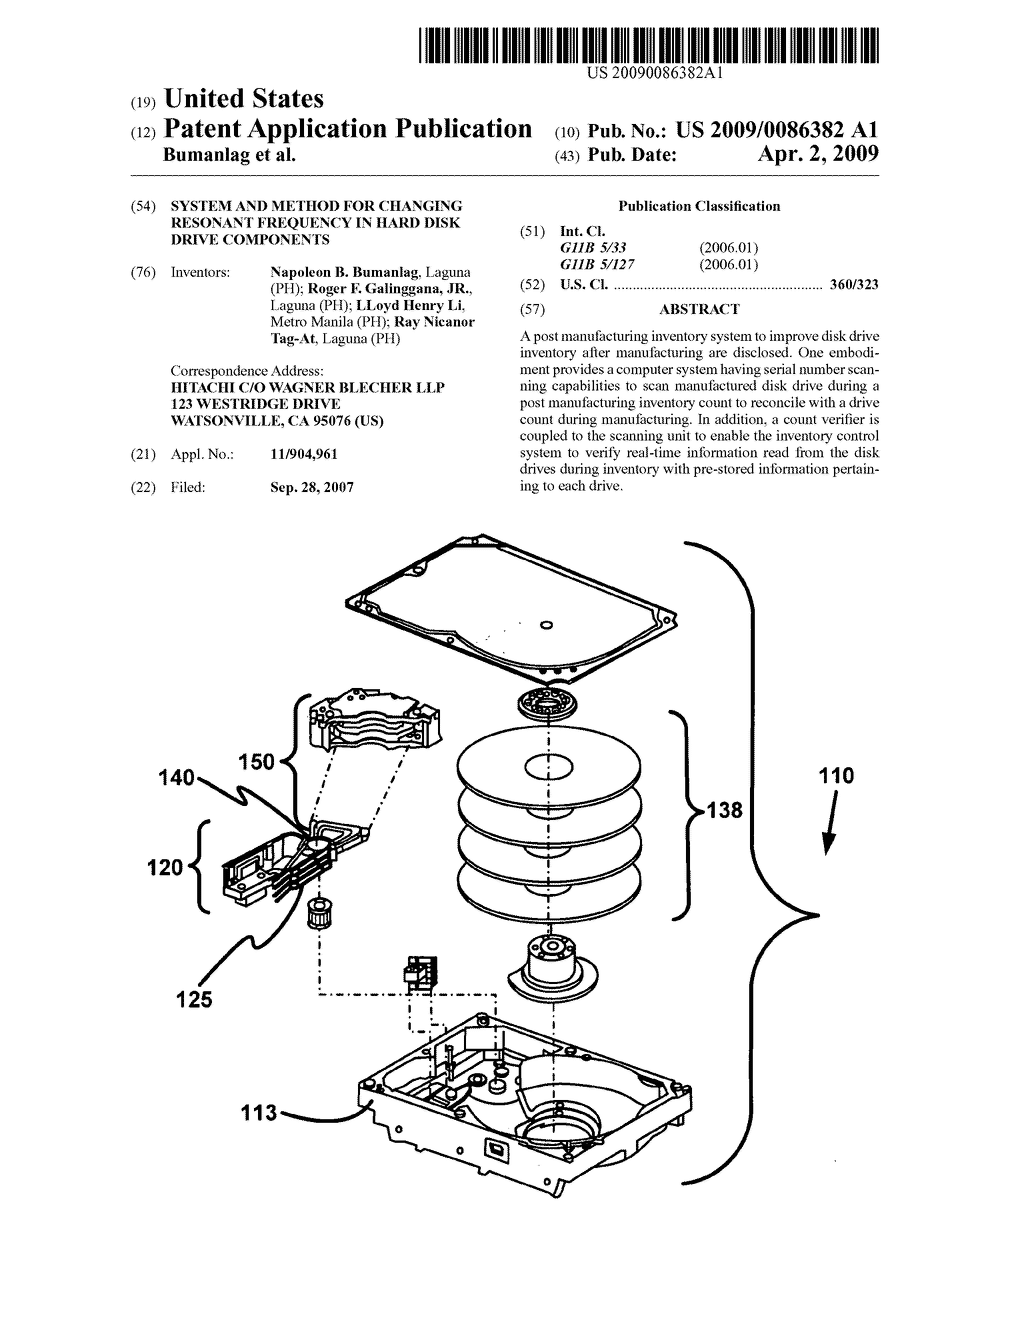 system and method for changing resonant frequency in hard disk drive Platter Hard Drive Diagram system and method for changing resonant frequency in hard disk drive ponents diagram schematic and image 01